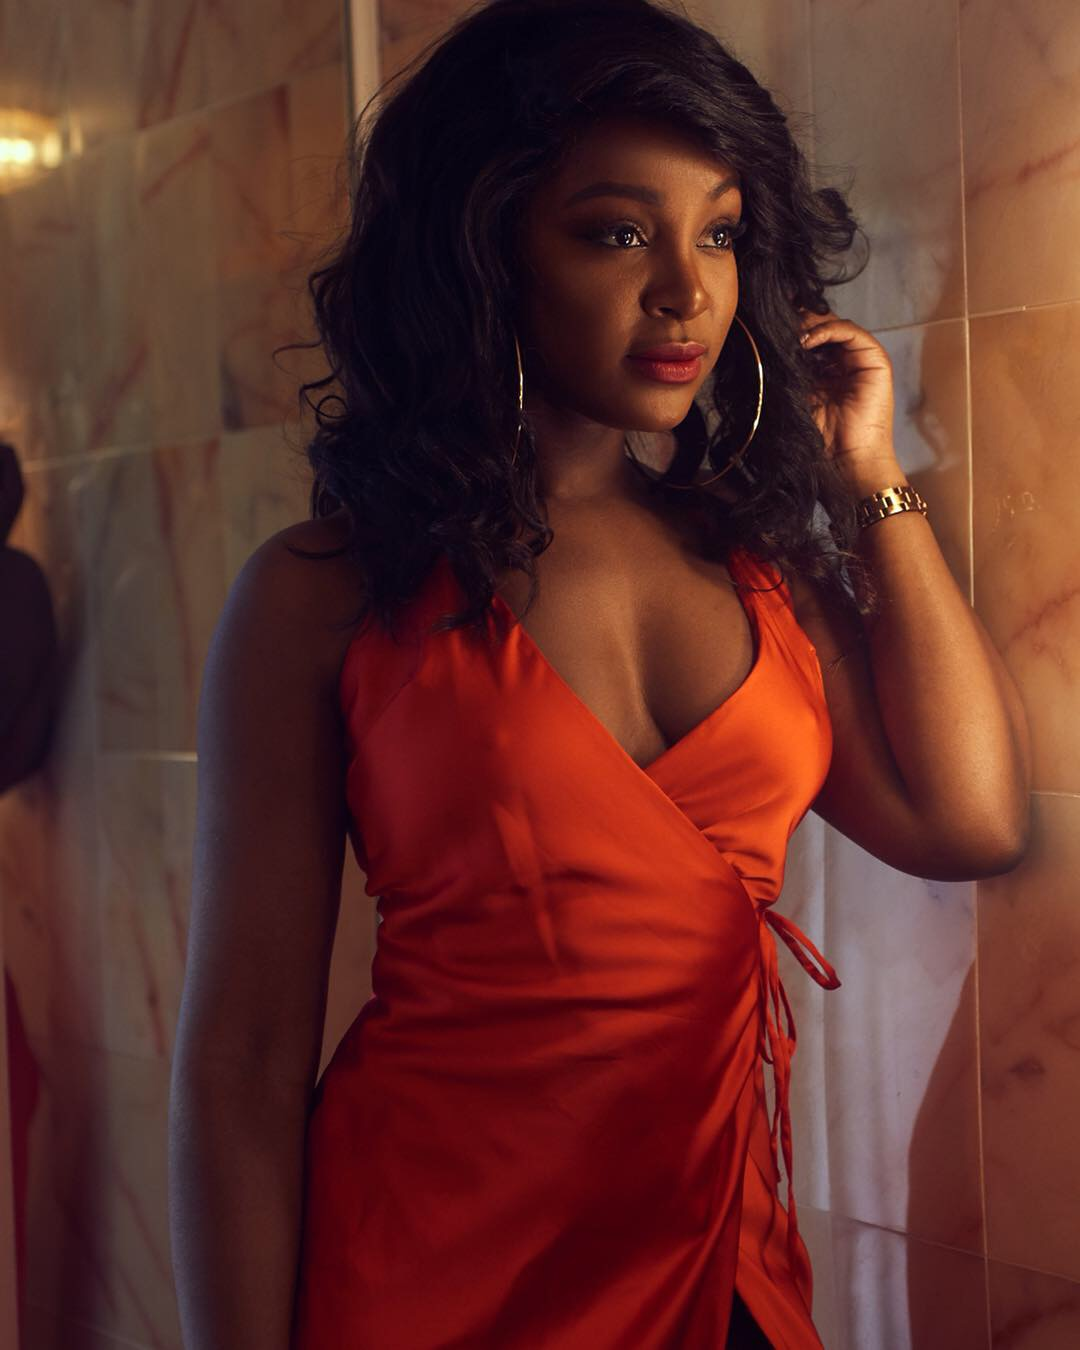 raychel-says-indy-sagoo-glamour-lord-and-beauty